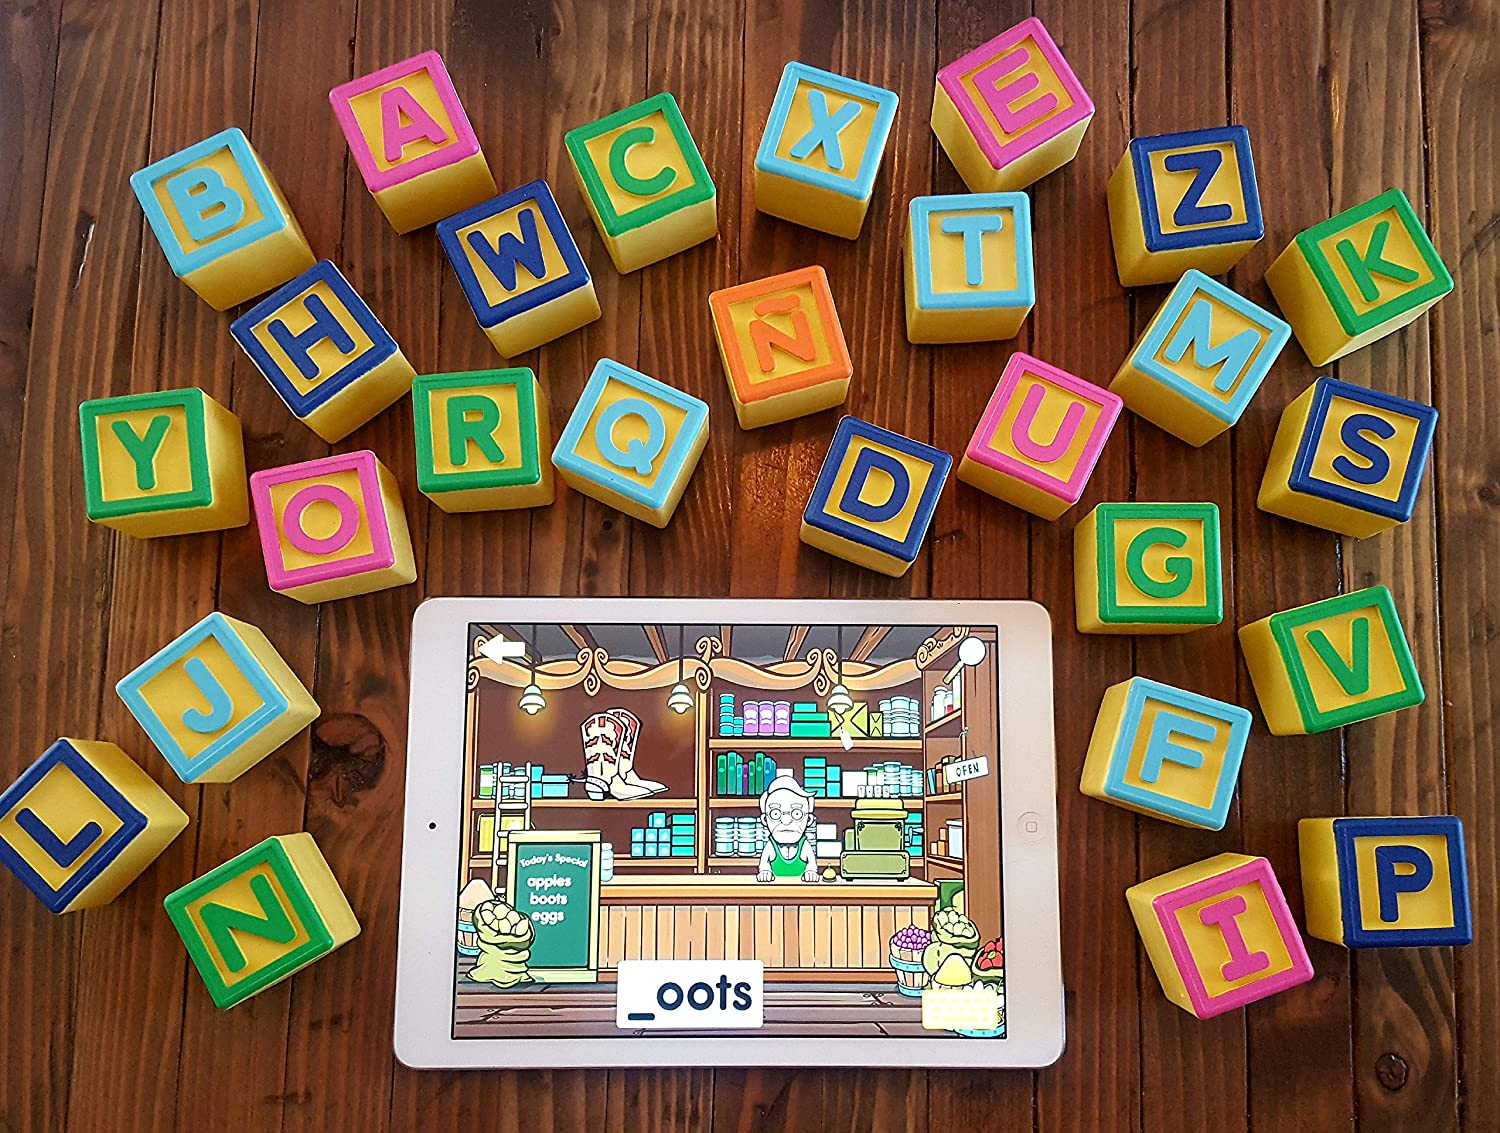 Includes 5 Free Apps Pepe Loves Books Inc. Montessori Toys for ABC Learning Smart Alphabet Blocks for Interactive Educational iPad Games for Preschool /& Kindergarten Learn English /& Spanish Toddlers /& Kids 1-6